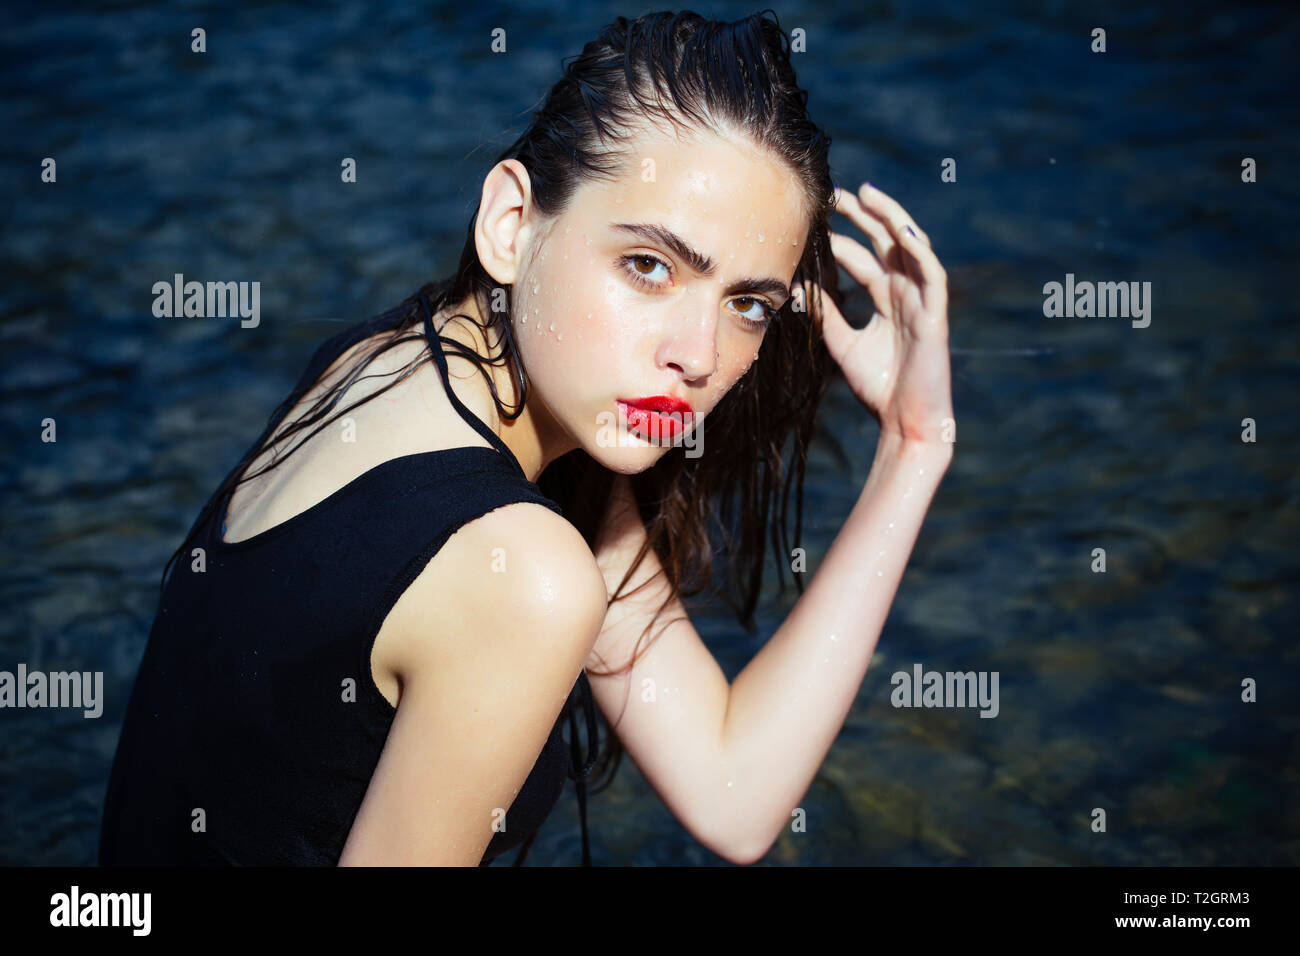 Fashion, beauty, makeup. Young woman with red lips in water. Diet, health, workout, fitness, refresh. Summer vacation, swimming, sport, diet Woman swi - Stock Image